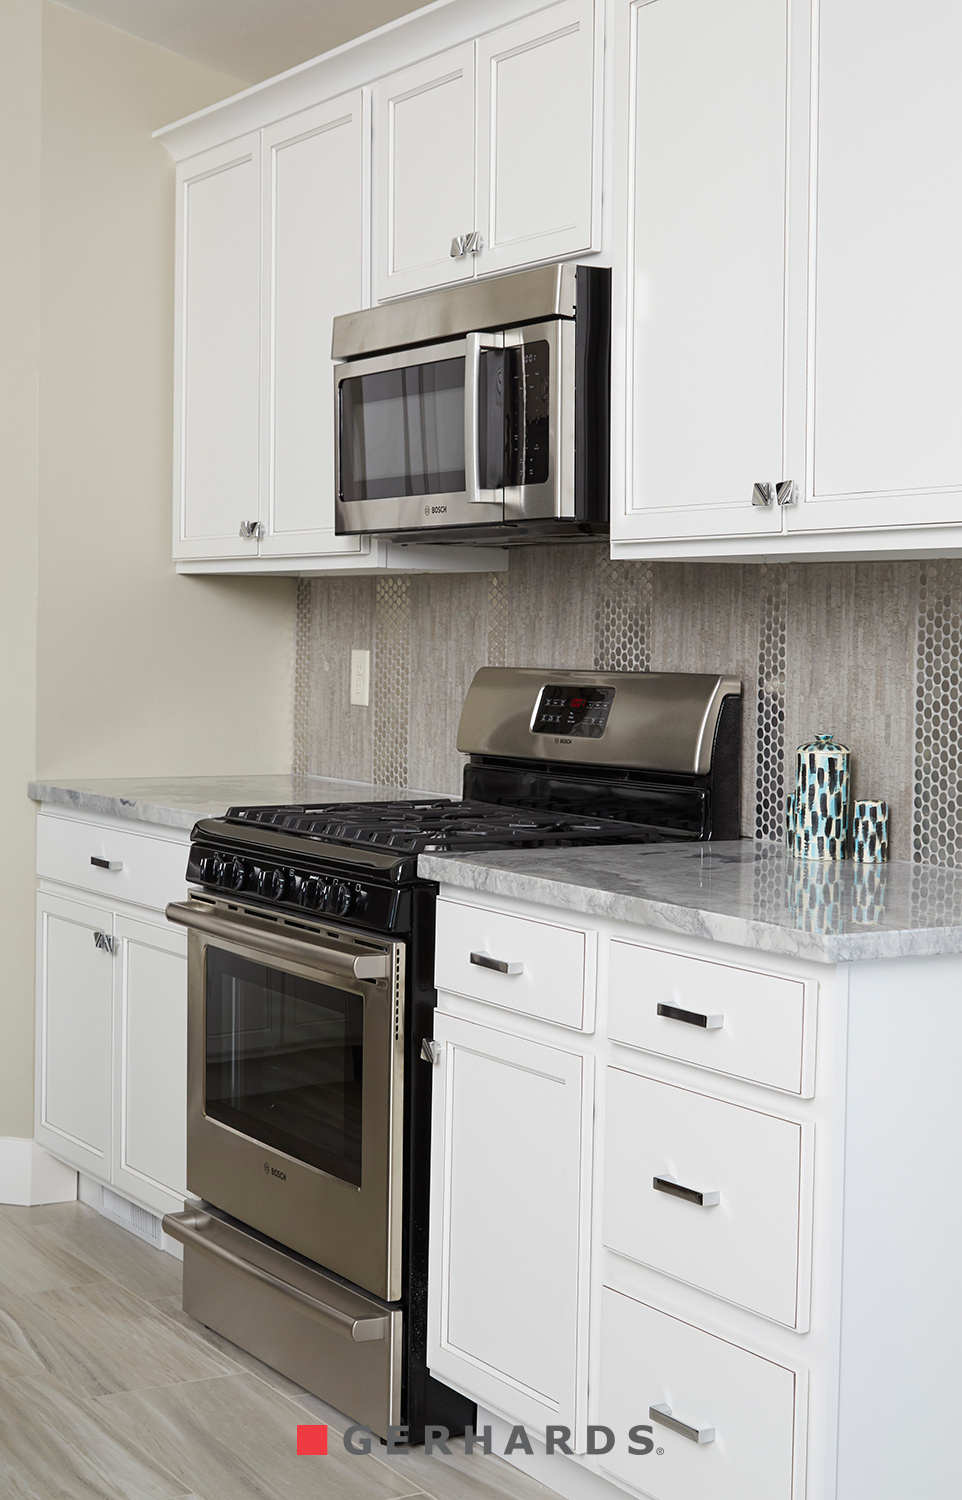 Shiny Backsplash In A Vertical Pattern White Cabinetry By